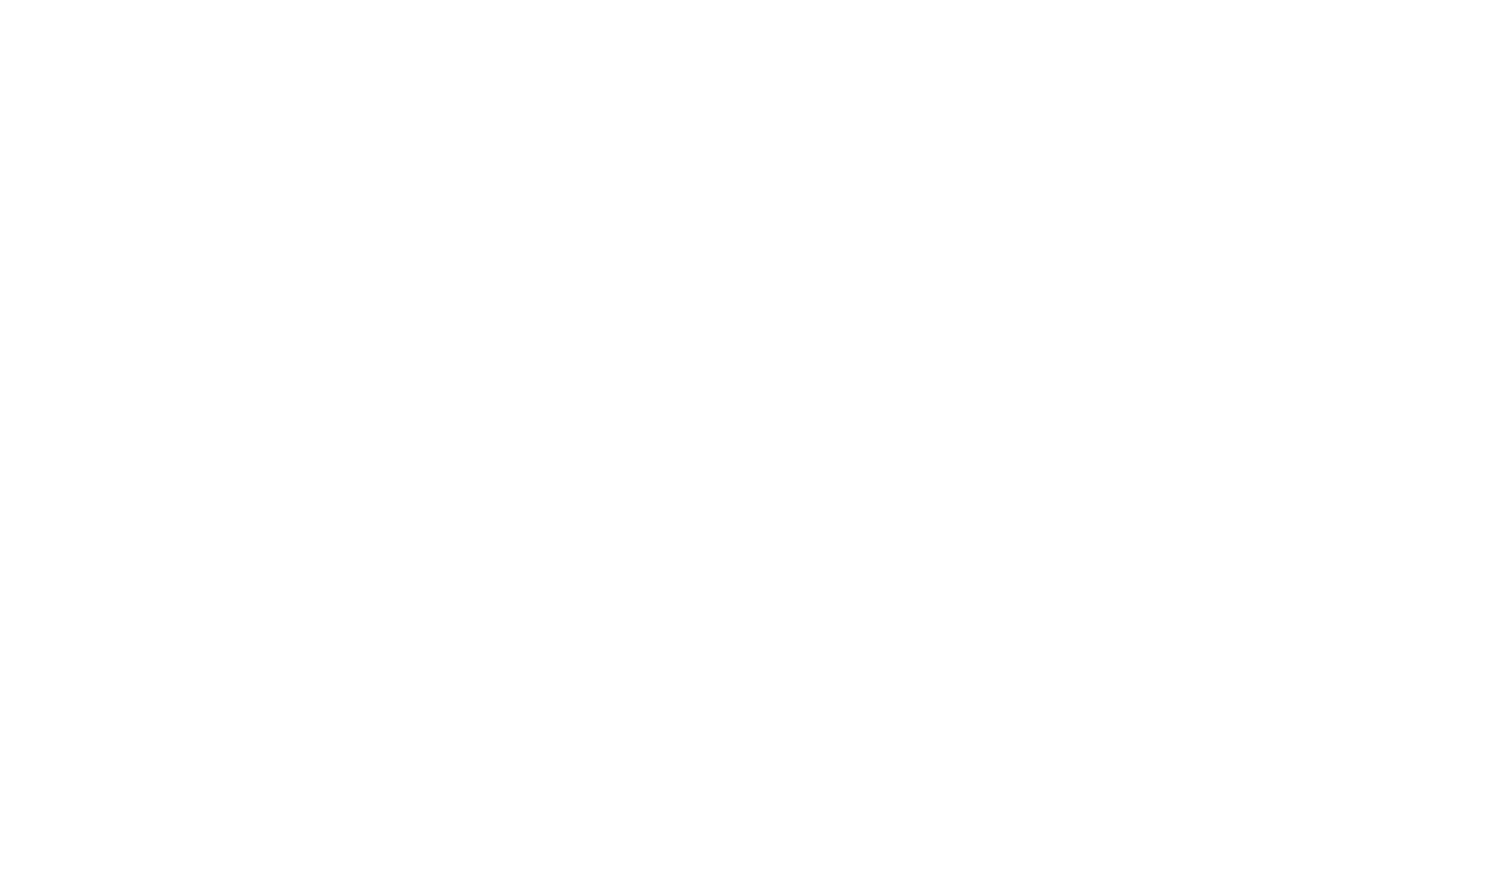 The Ruggeds